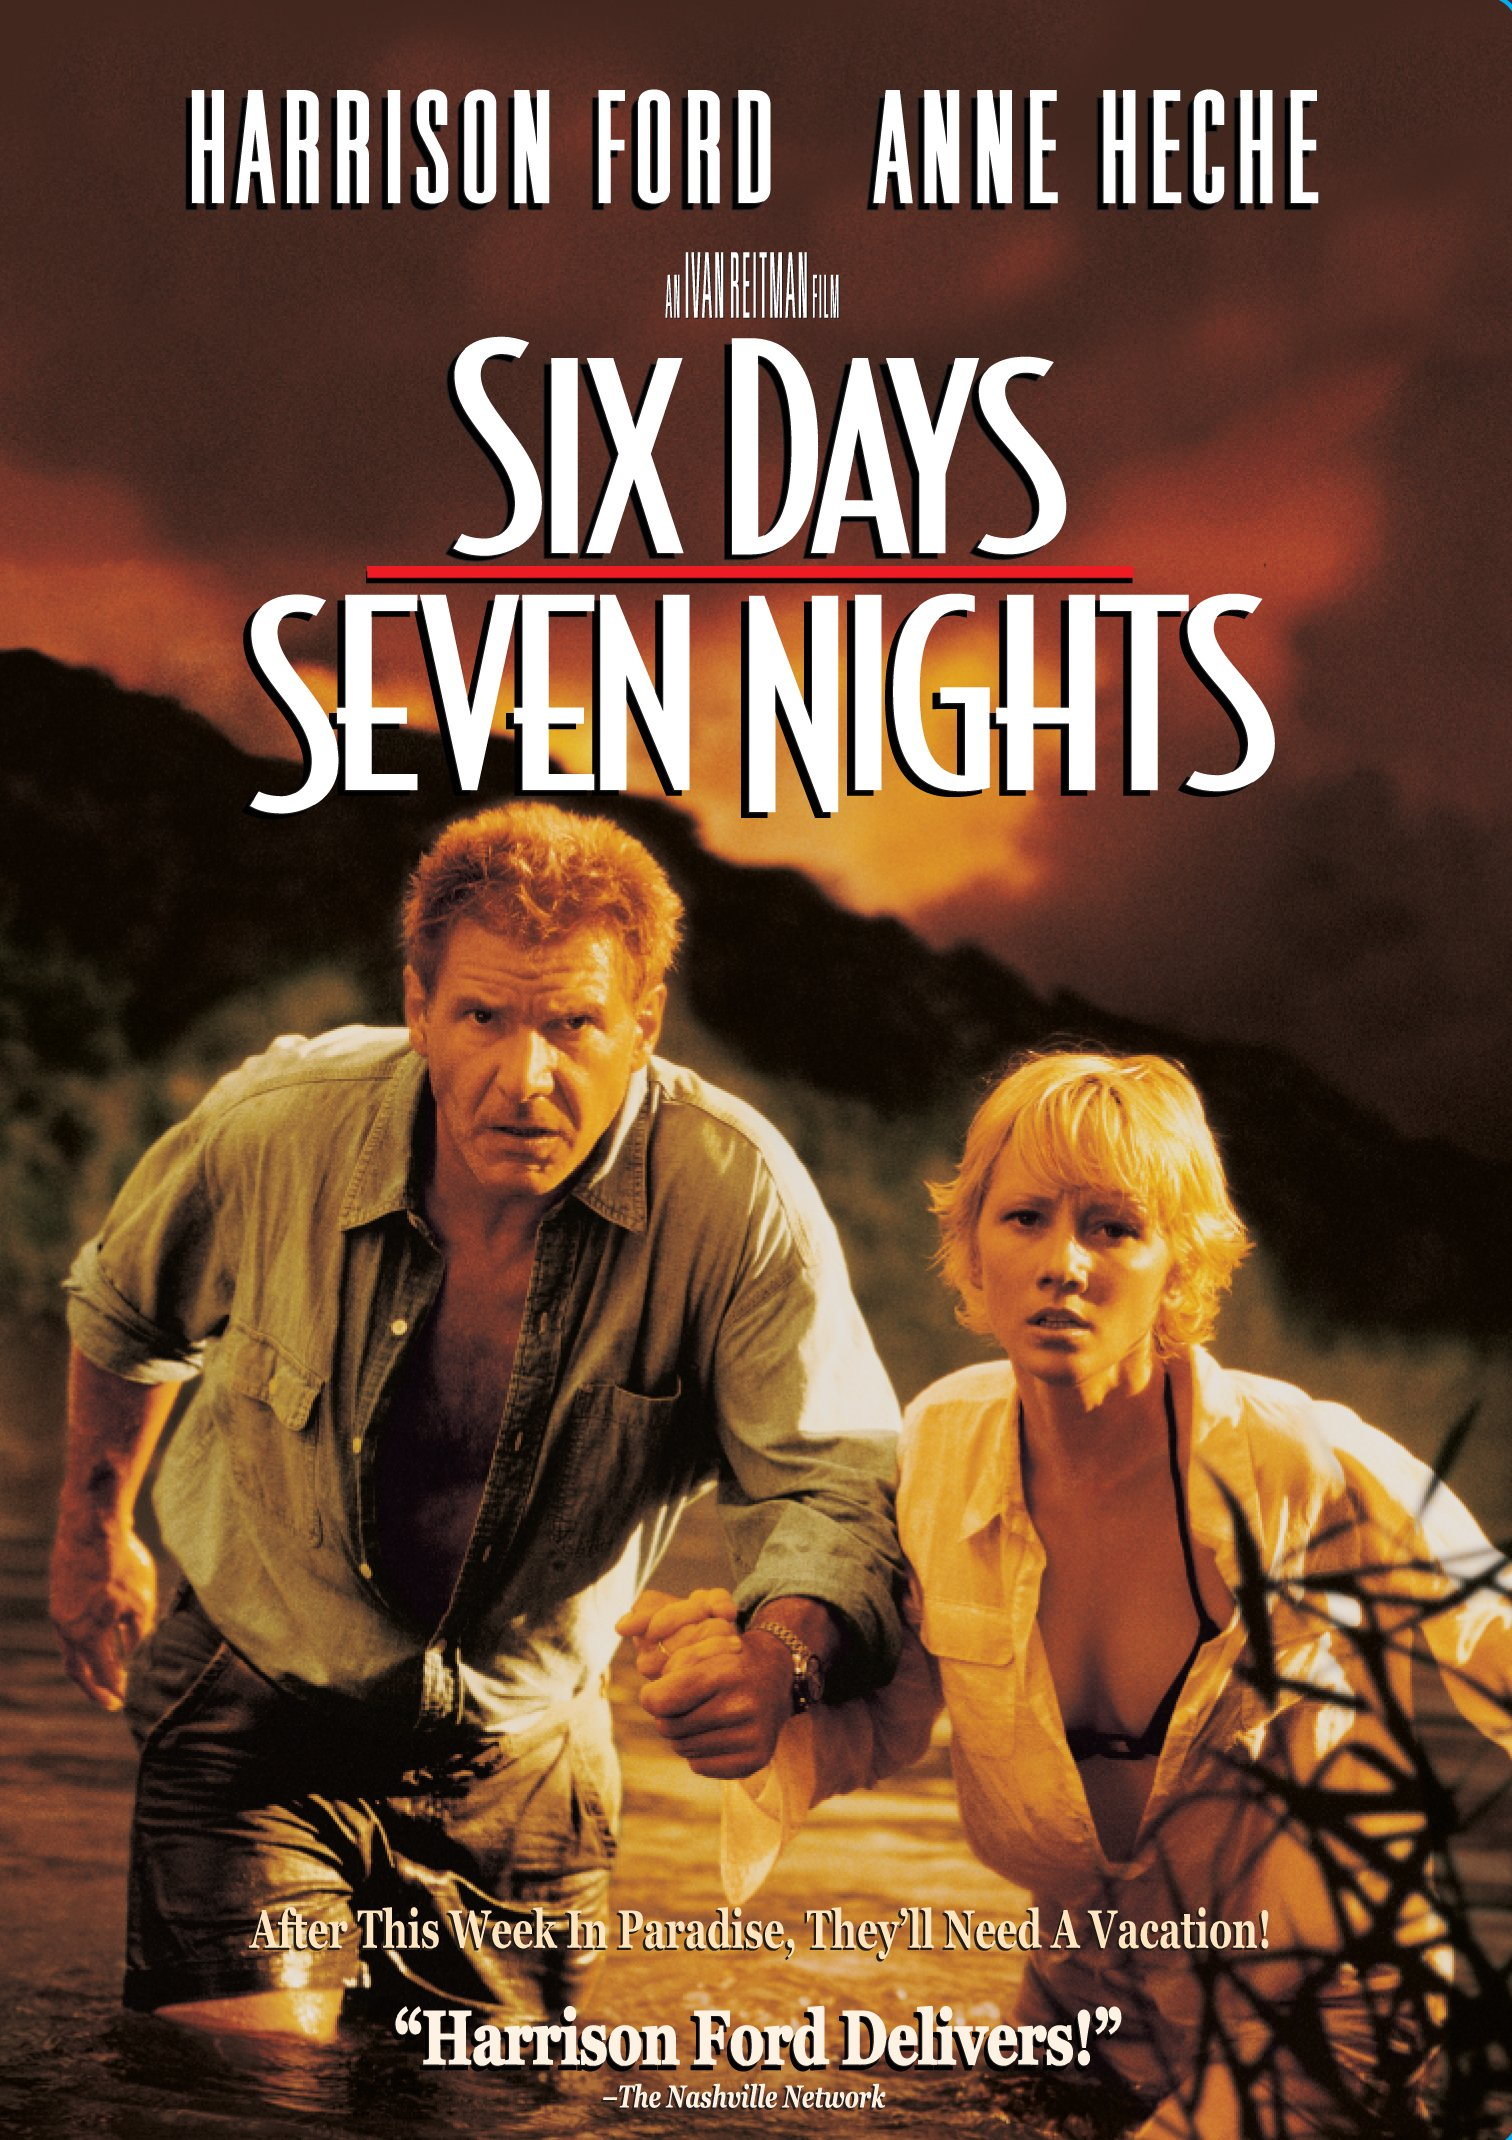 DVD : Six Days Seven Nights & Ac-3 (AC-3, Widescreen)